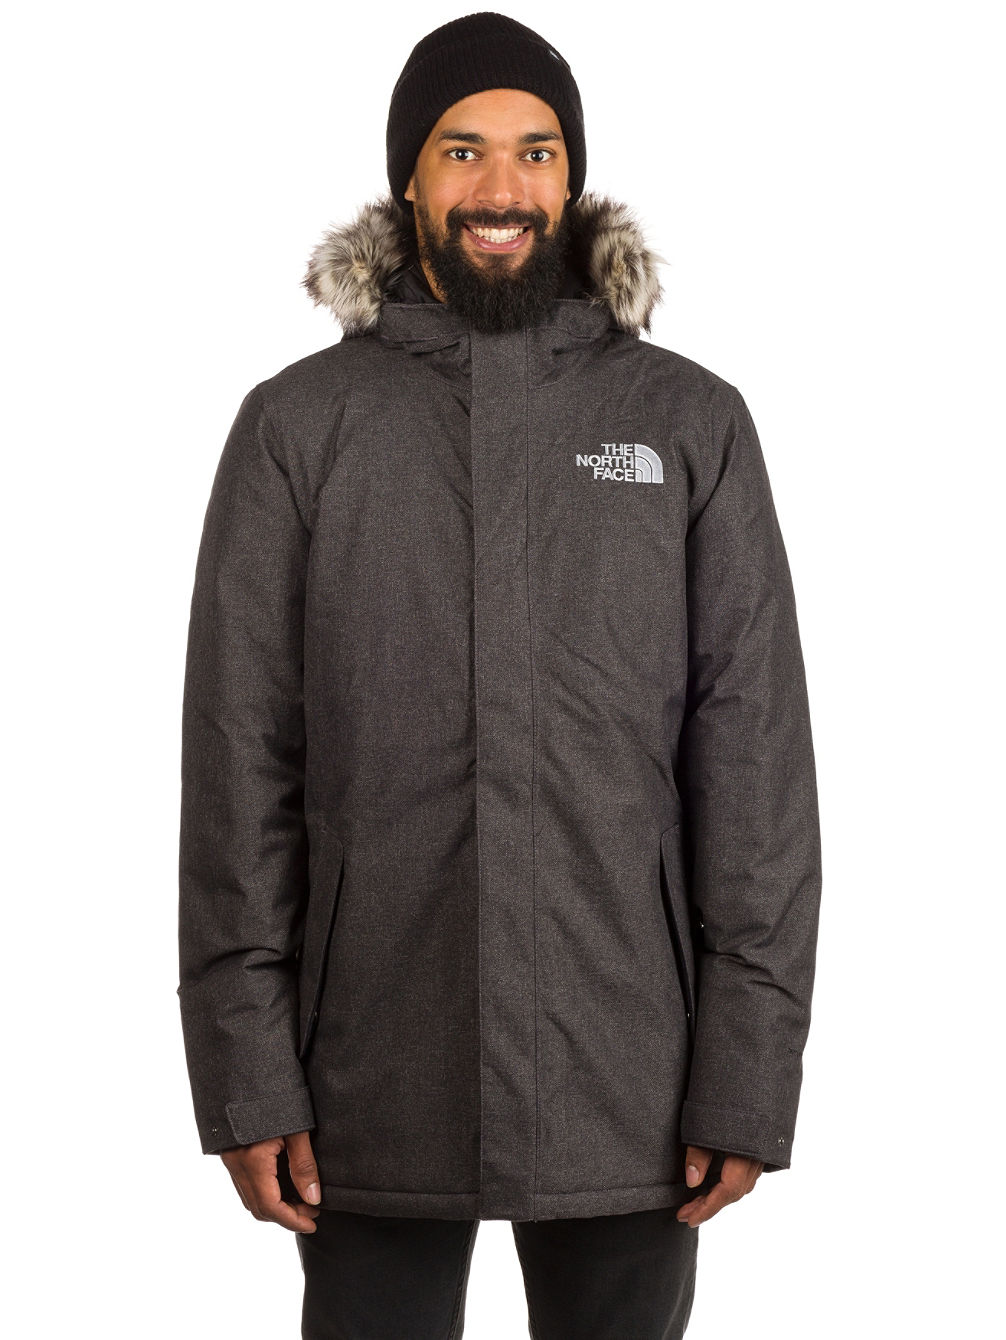 Buy THE NORTH FACE Zaneck Jacket online at blue-tomato.com 966140cff390